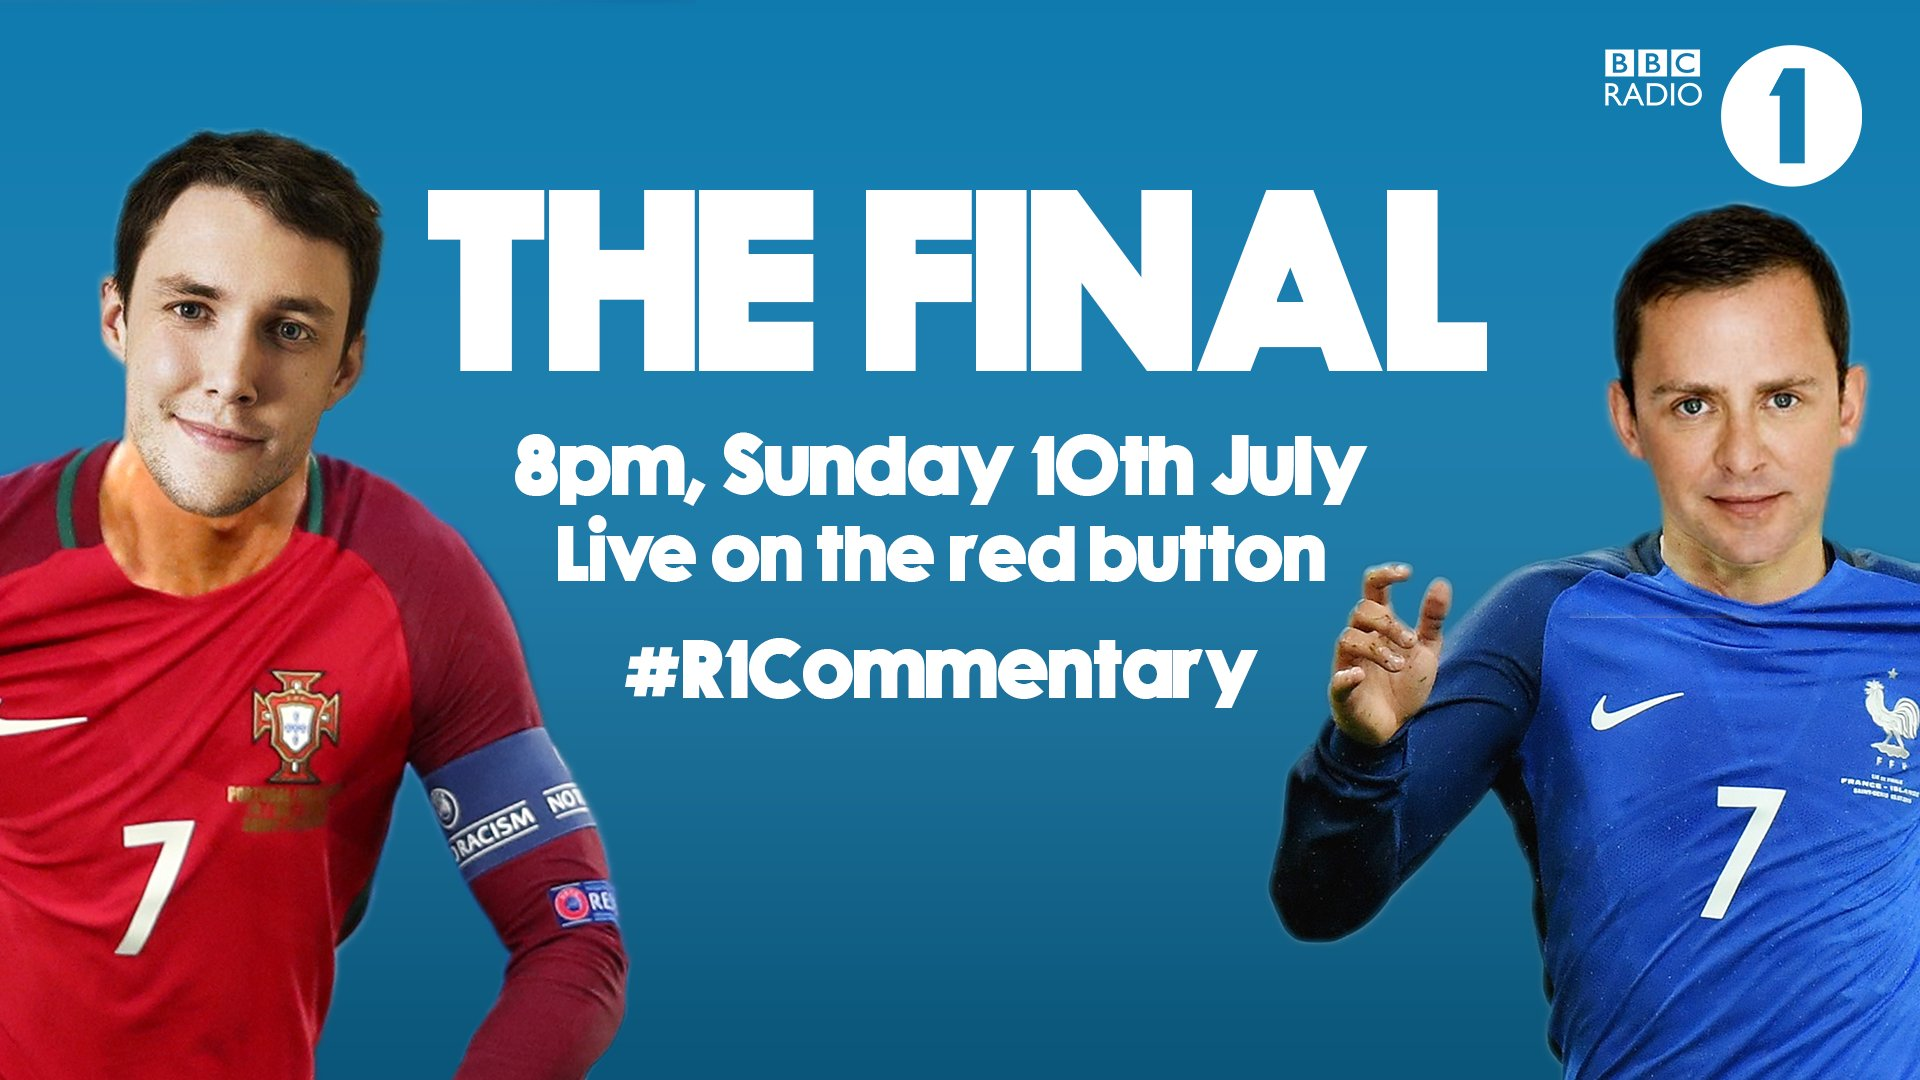 Where to hear Scott and Chris' Euro 2016 commentary